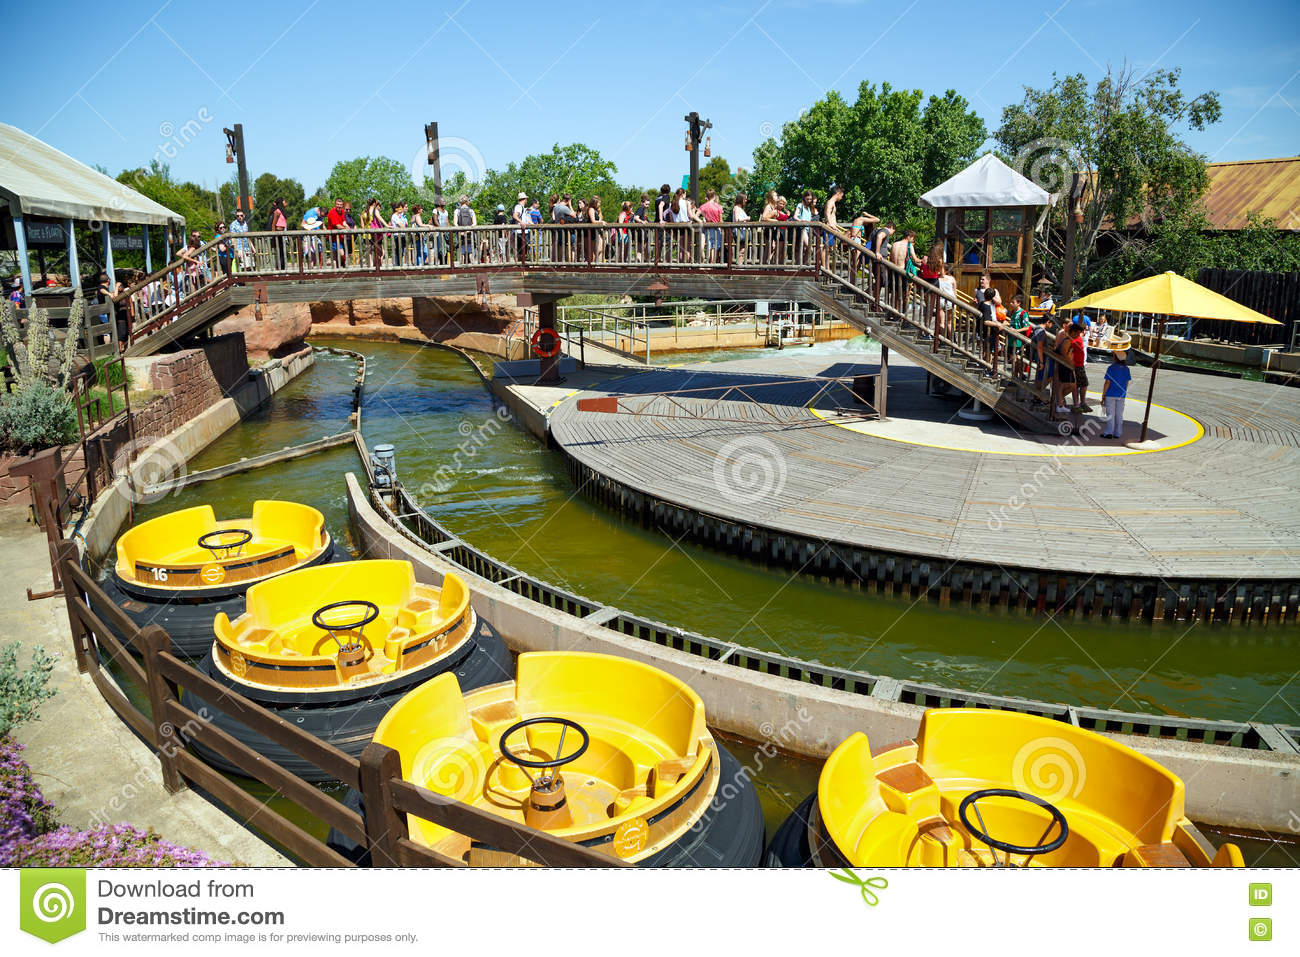 Attraction Grand Canyon Rapids In The Theme Park Port Aventura In.